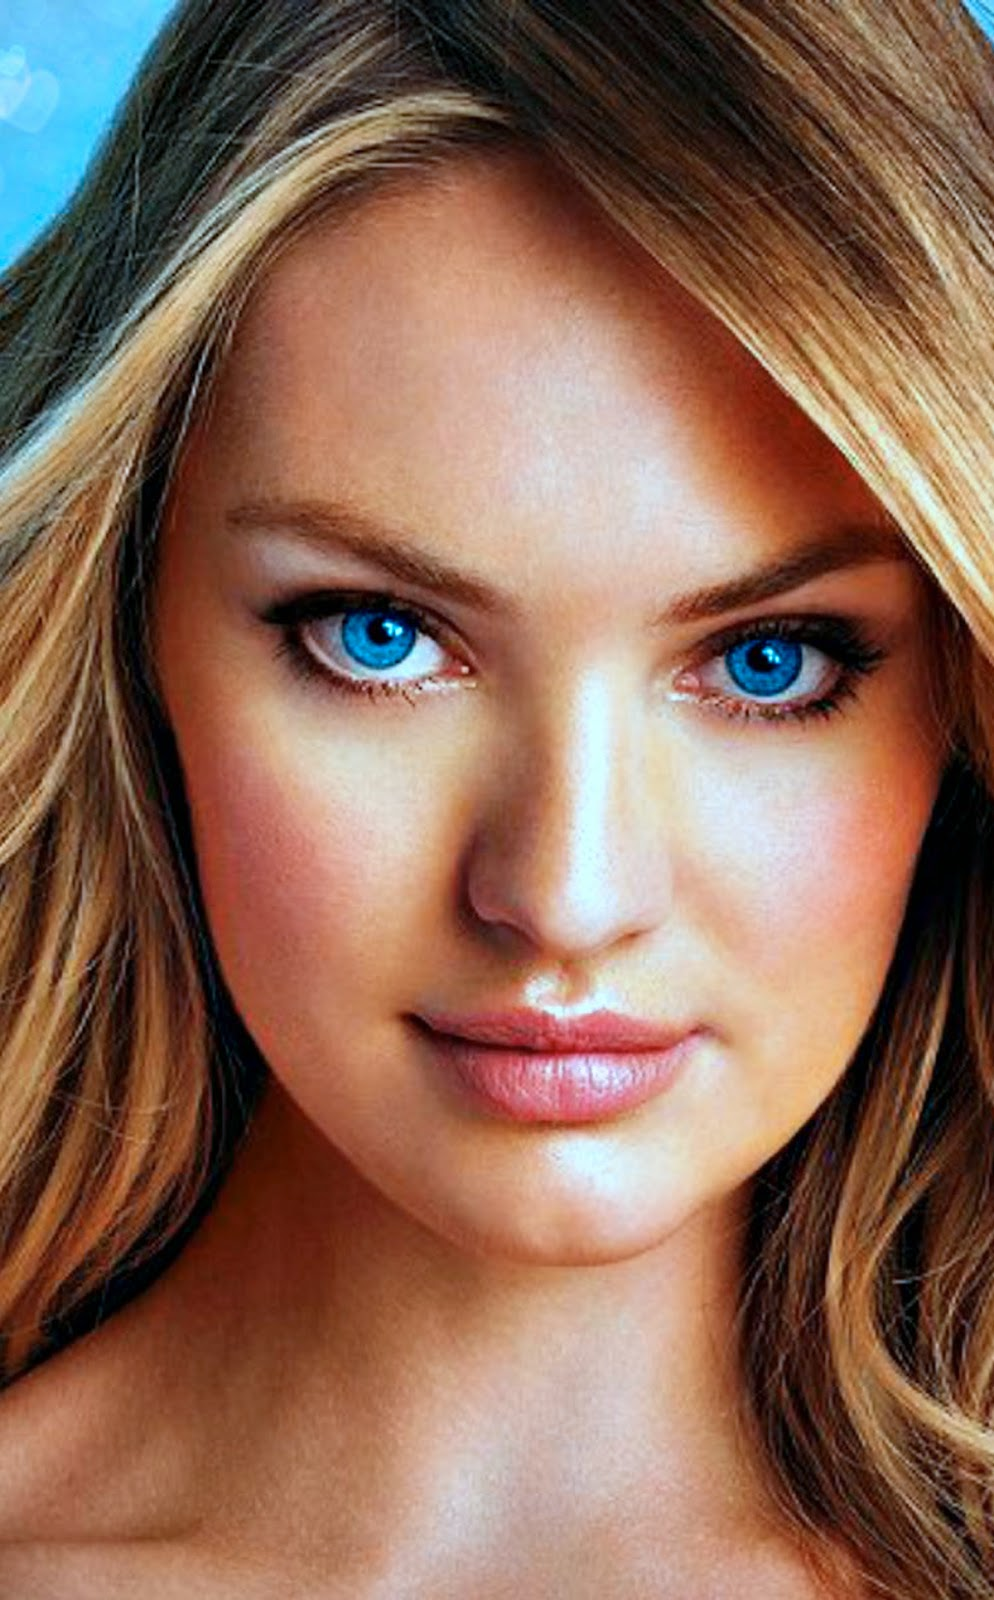 CANDICE SWANEPOEL BIG BLUE EYES CLOSE UP 1932 X 1200 Candice Swanepoel, Victoria's Secret, wallpaper,